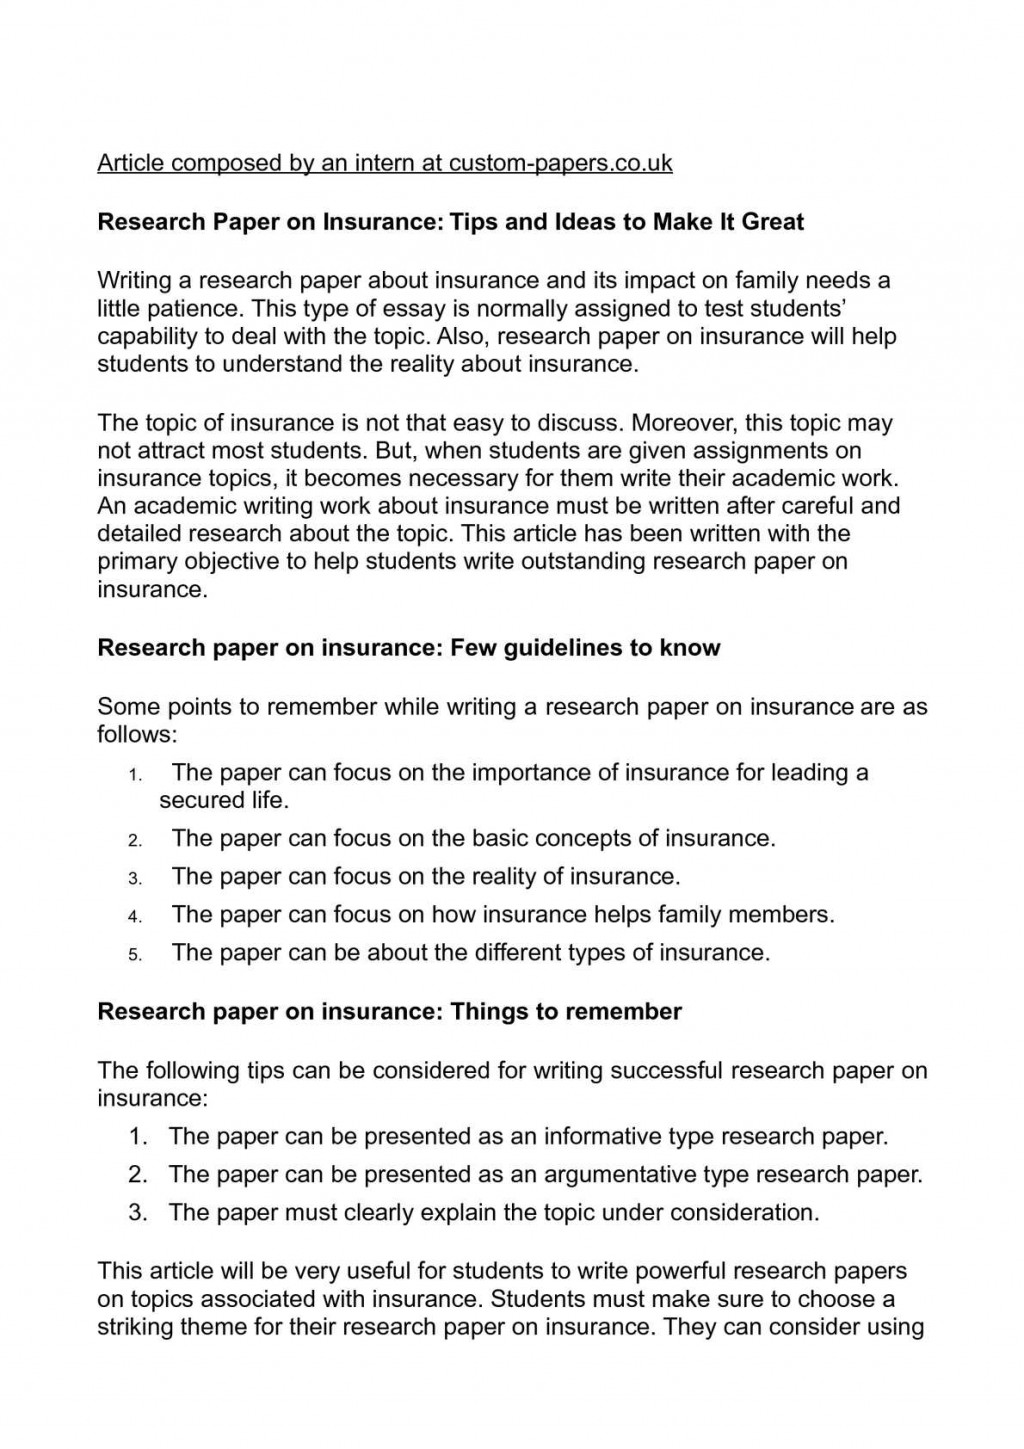 010 Ideas For Research Paper Shocking A Topics Writing Good Social Psychology Large